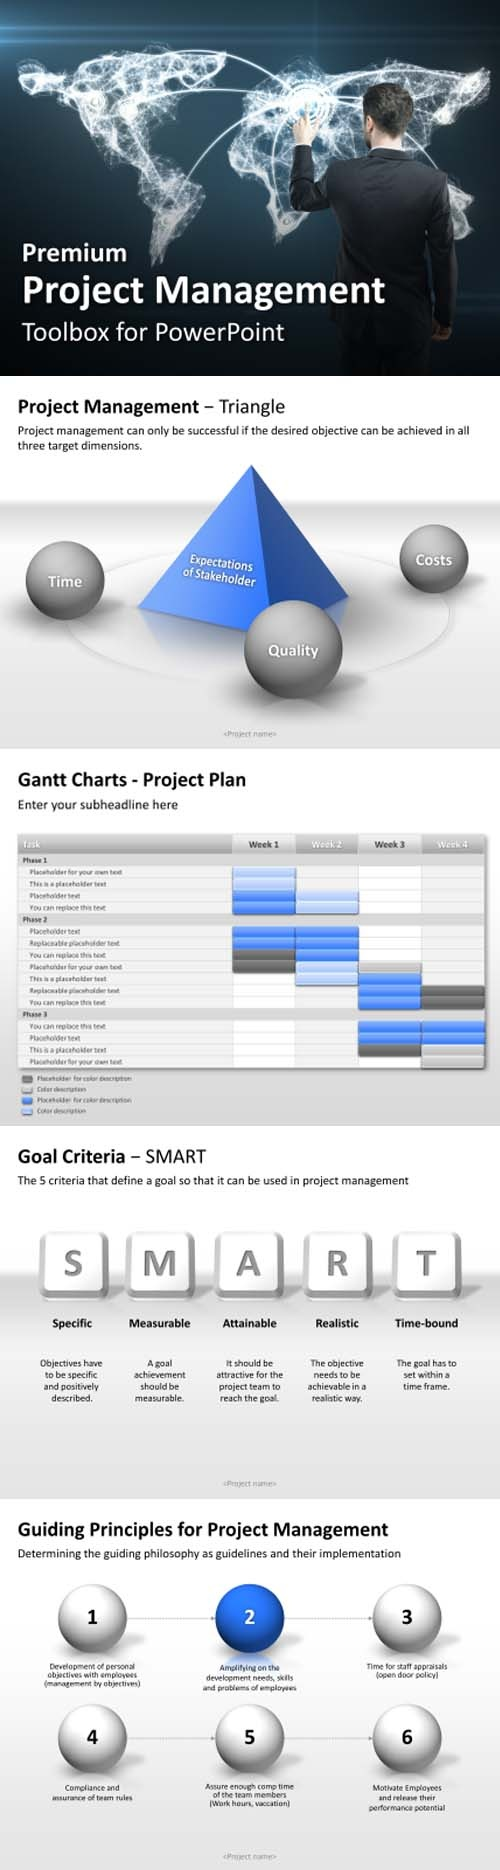 Attractive Powerpoint Templates For Project Management In Business